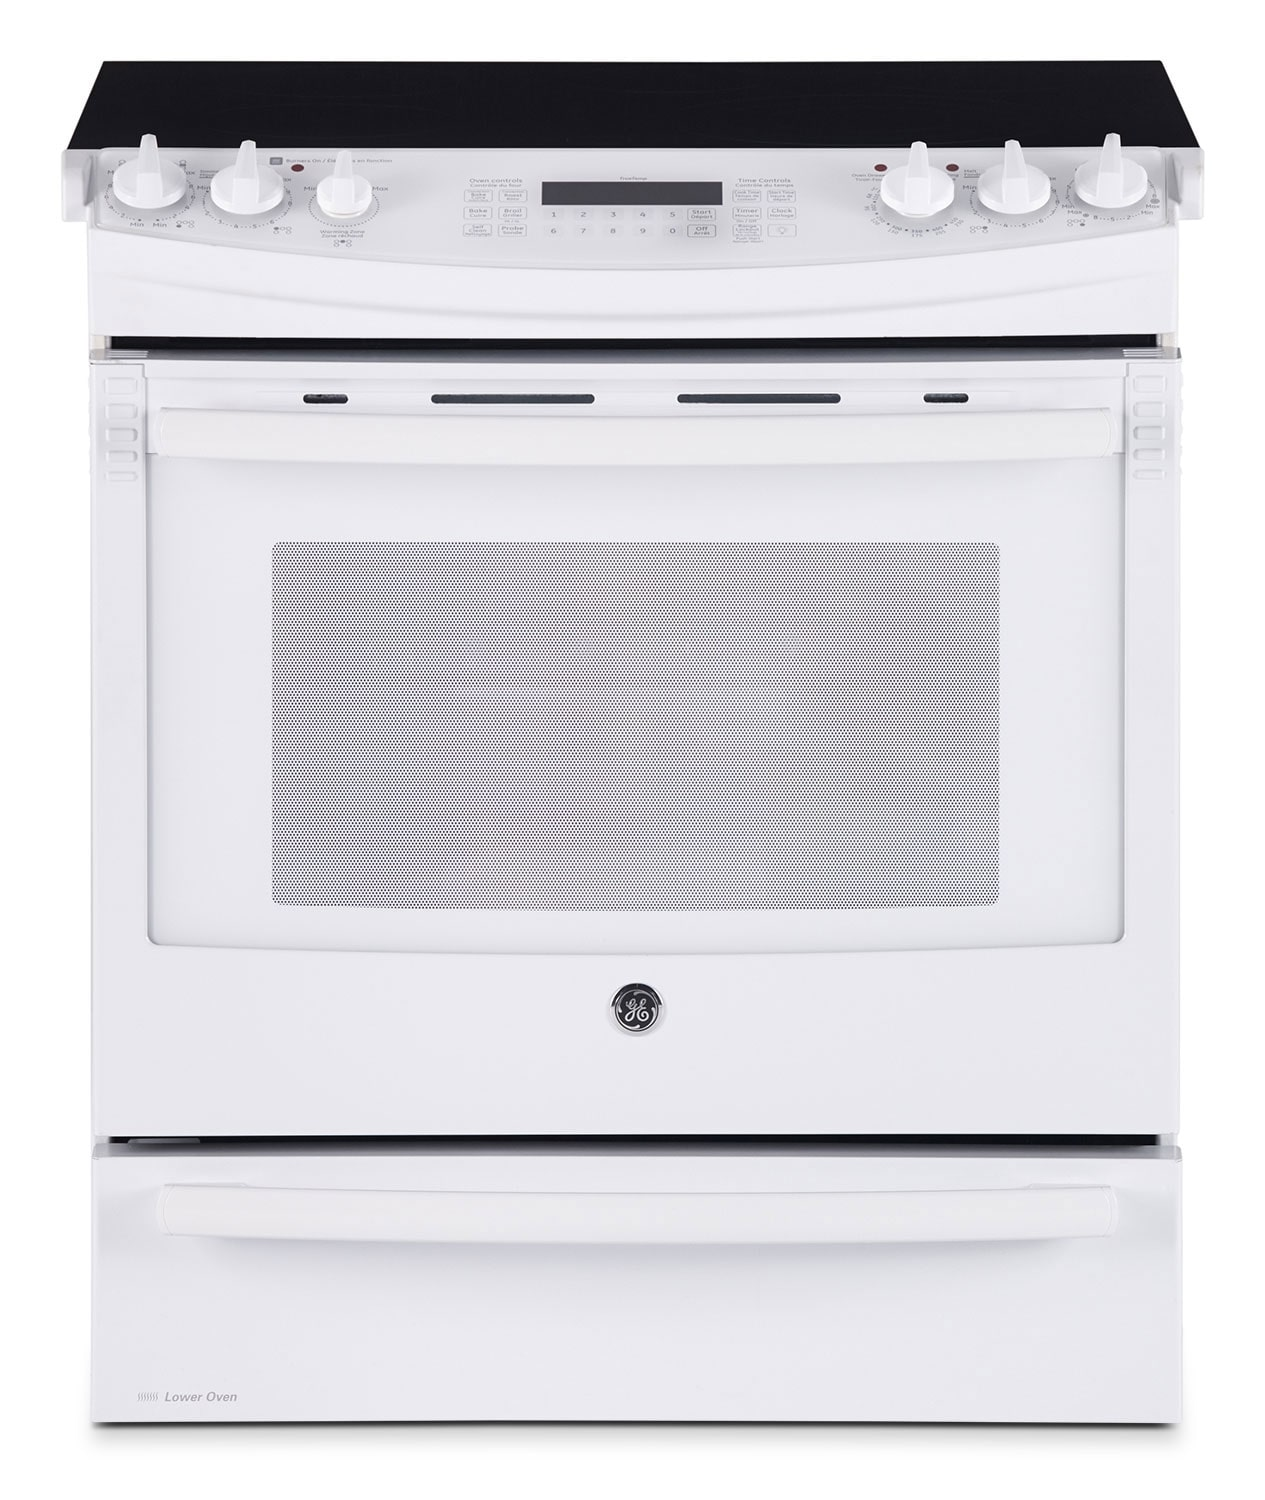 GE White Slide-In Electric Convection Range (6.6 Cu. Ft.) - PCS940DFWW